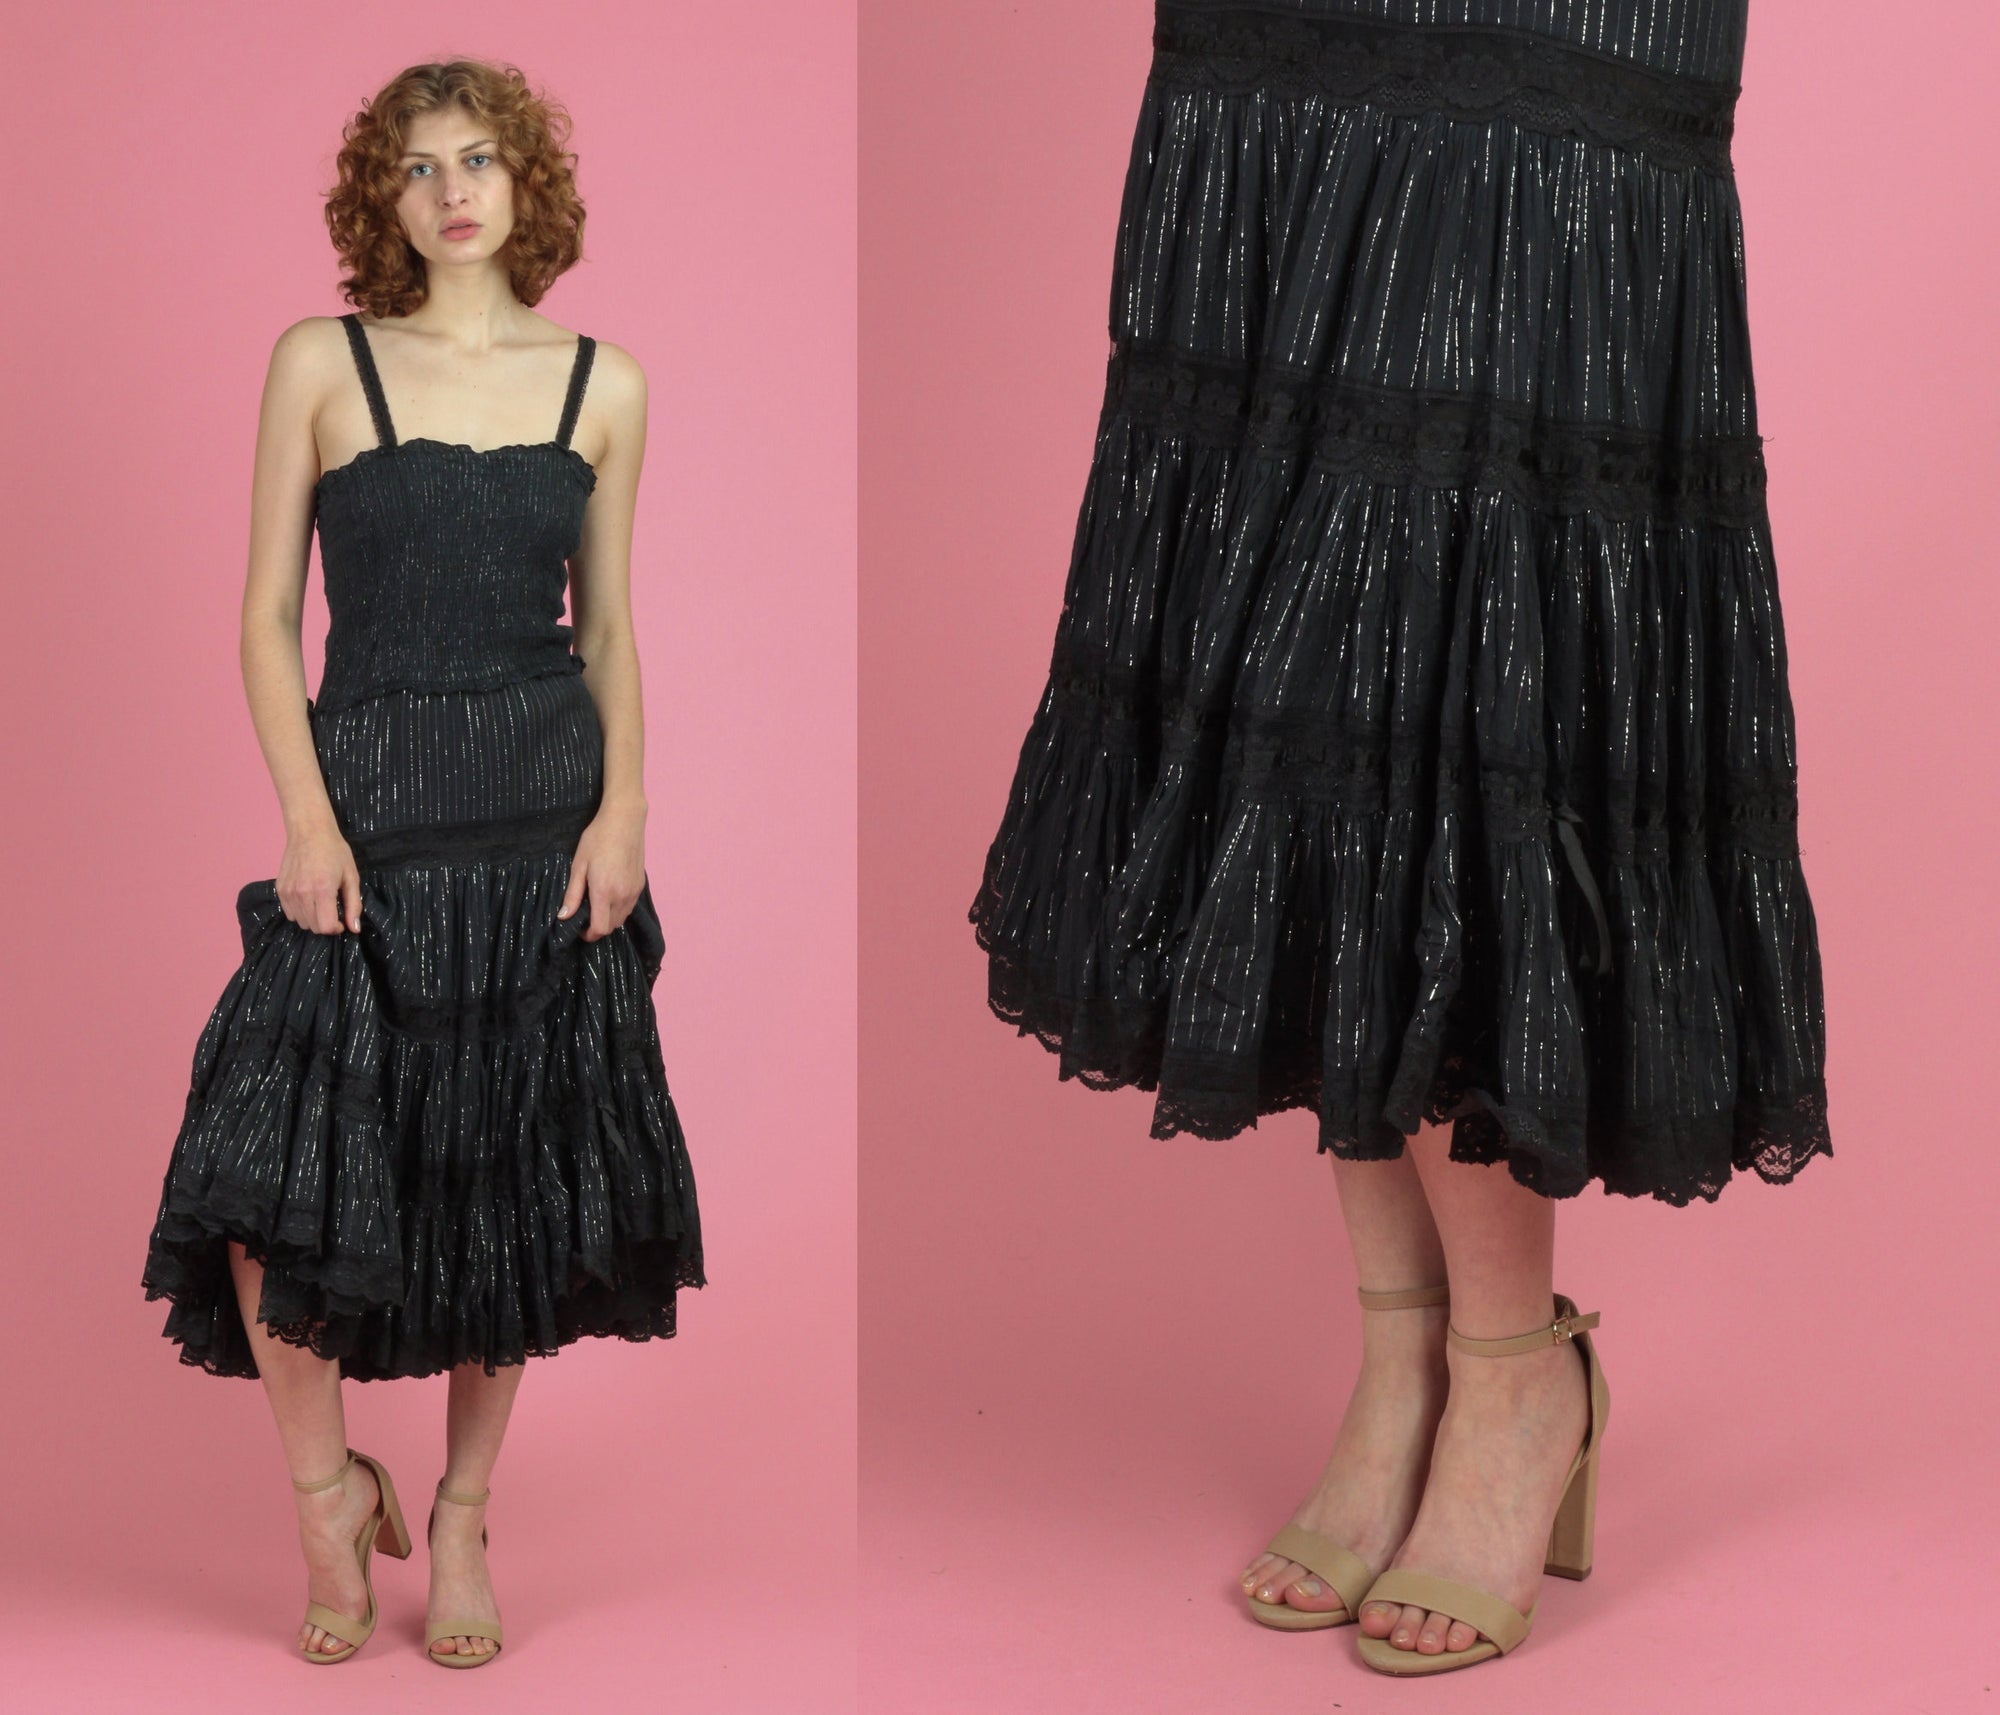 Vintage Indian Black Metallic Gauzy Sundress - Small